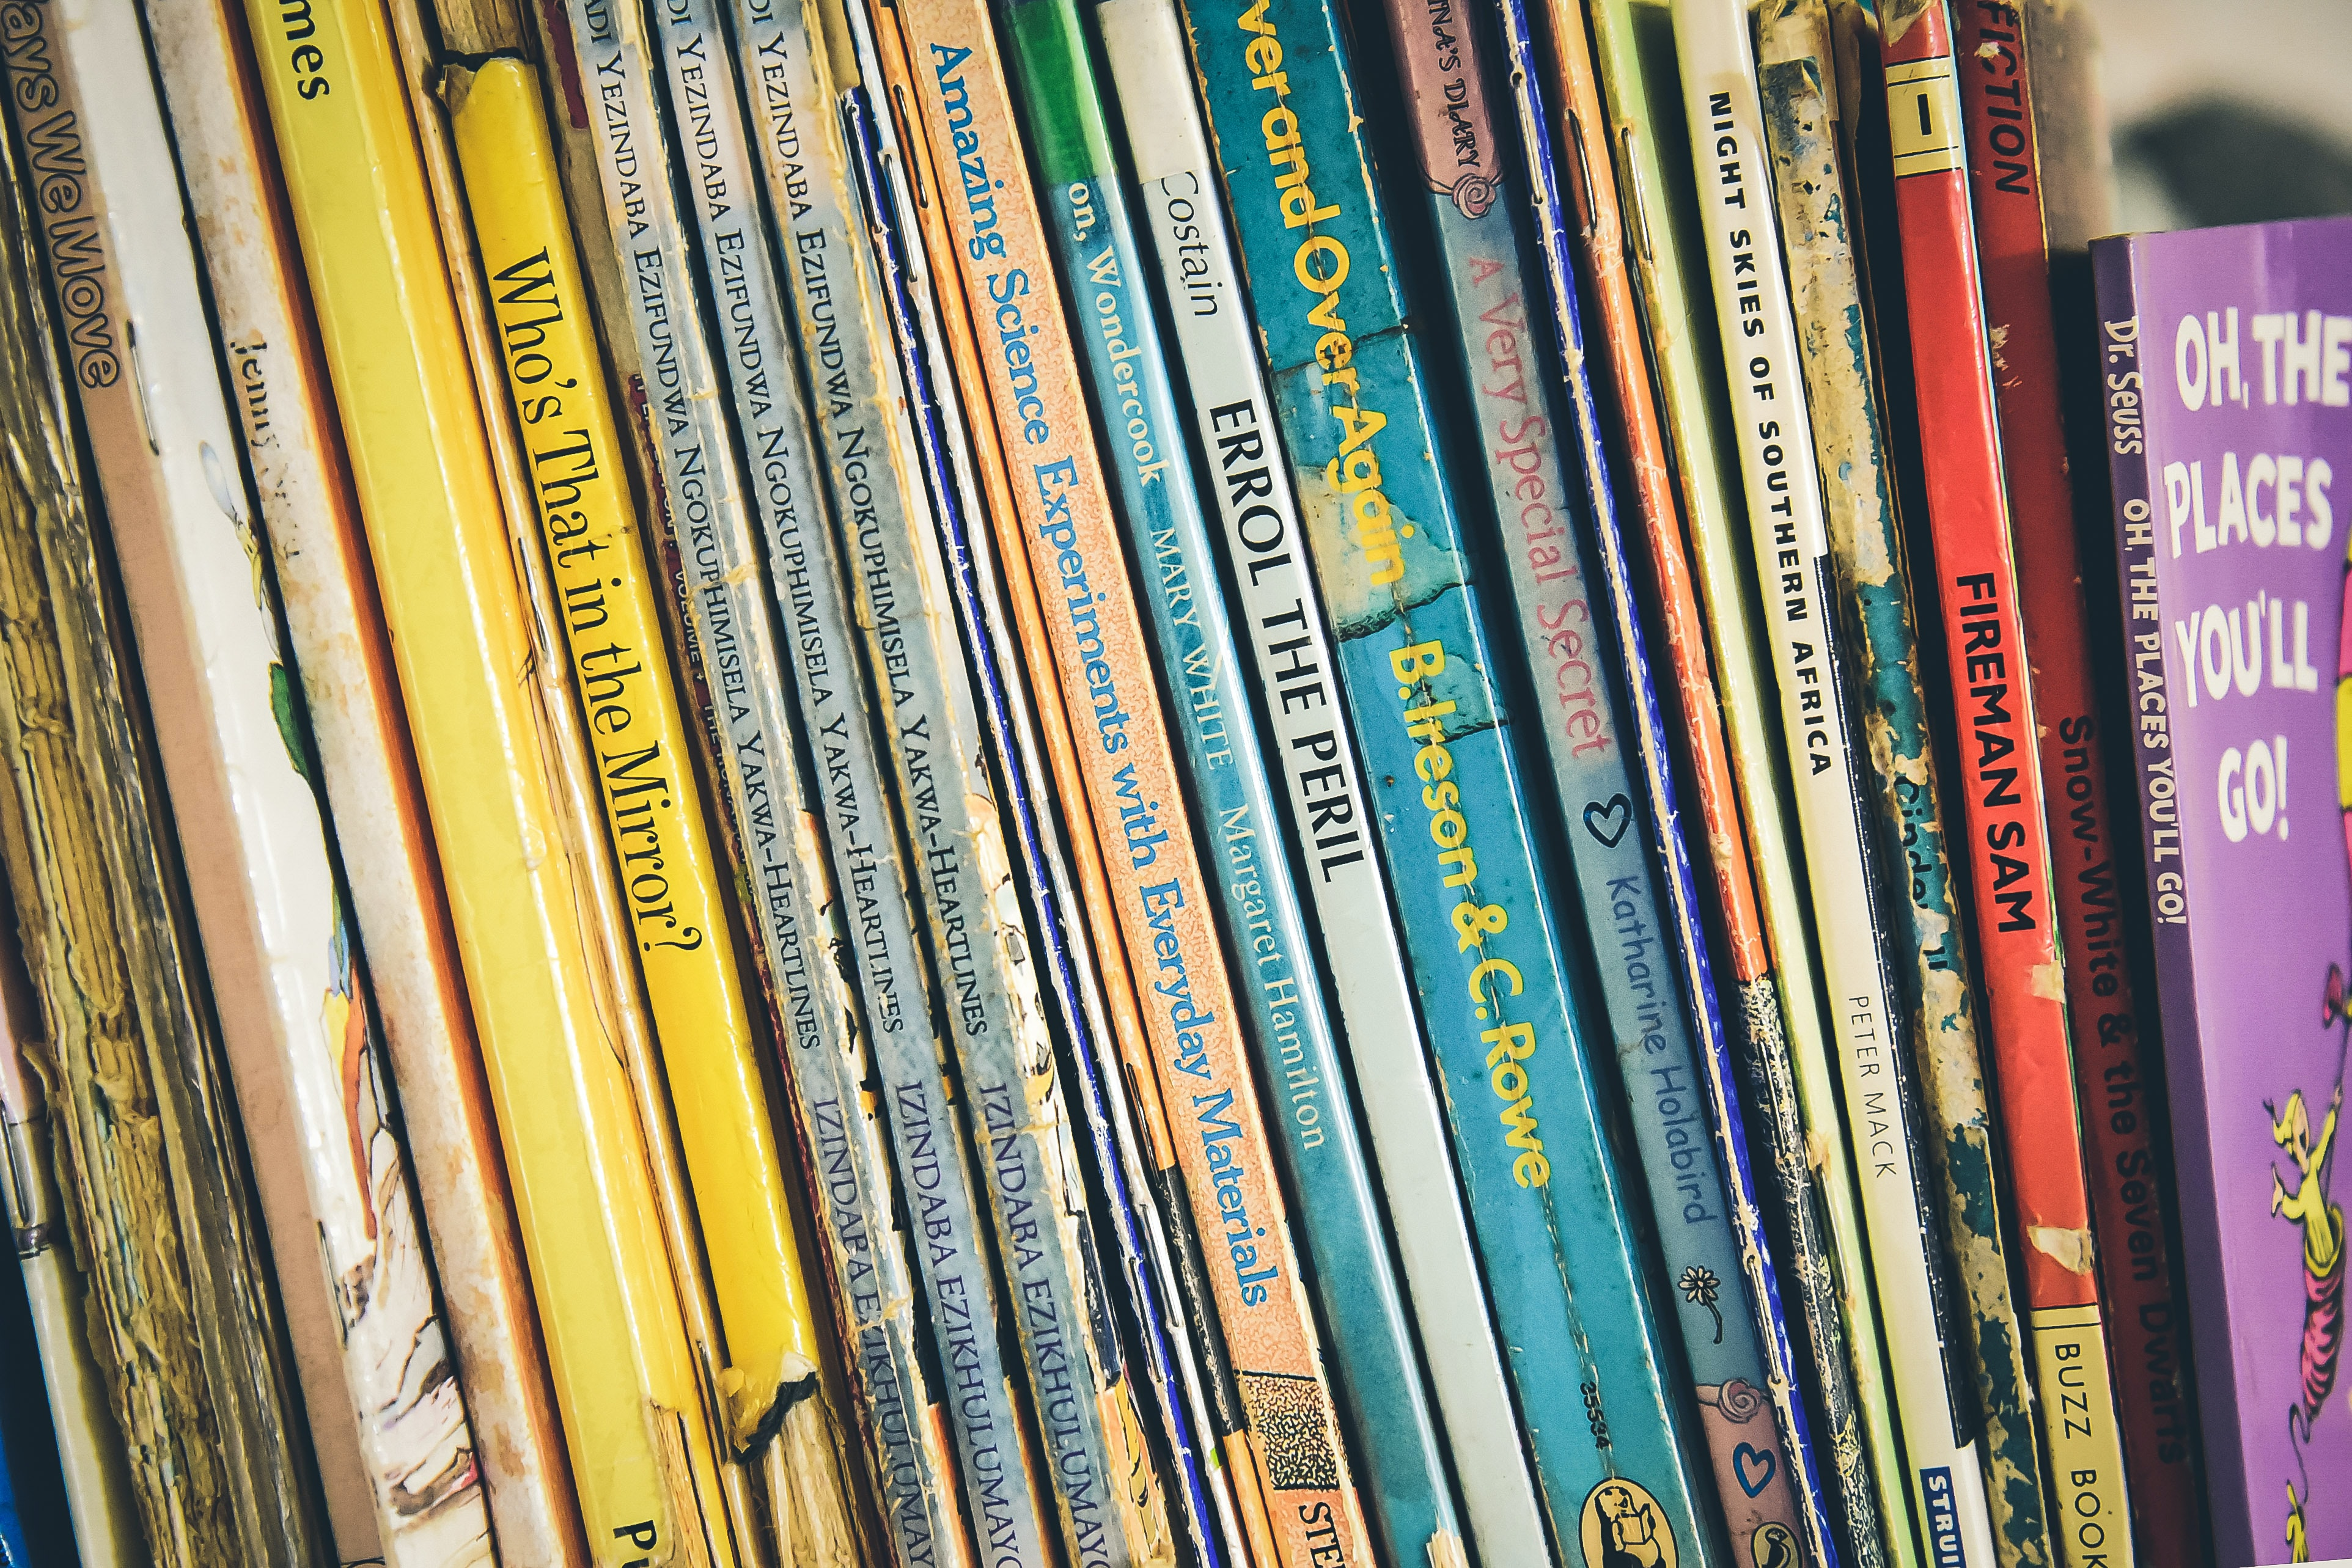 Several children's books on a shelf